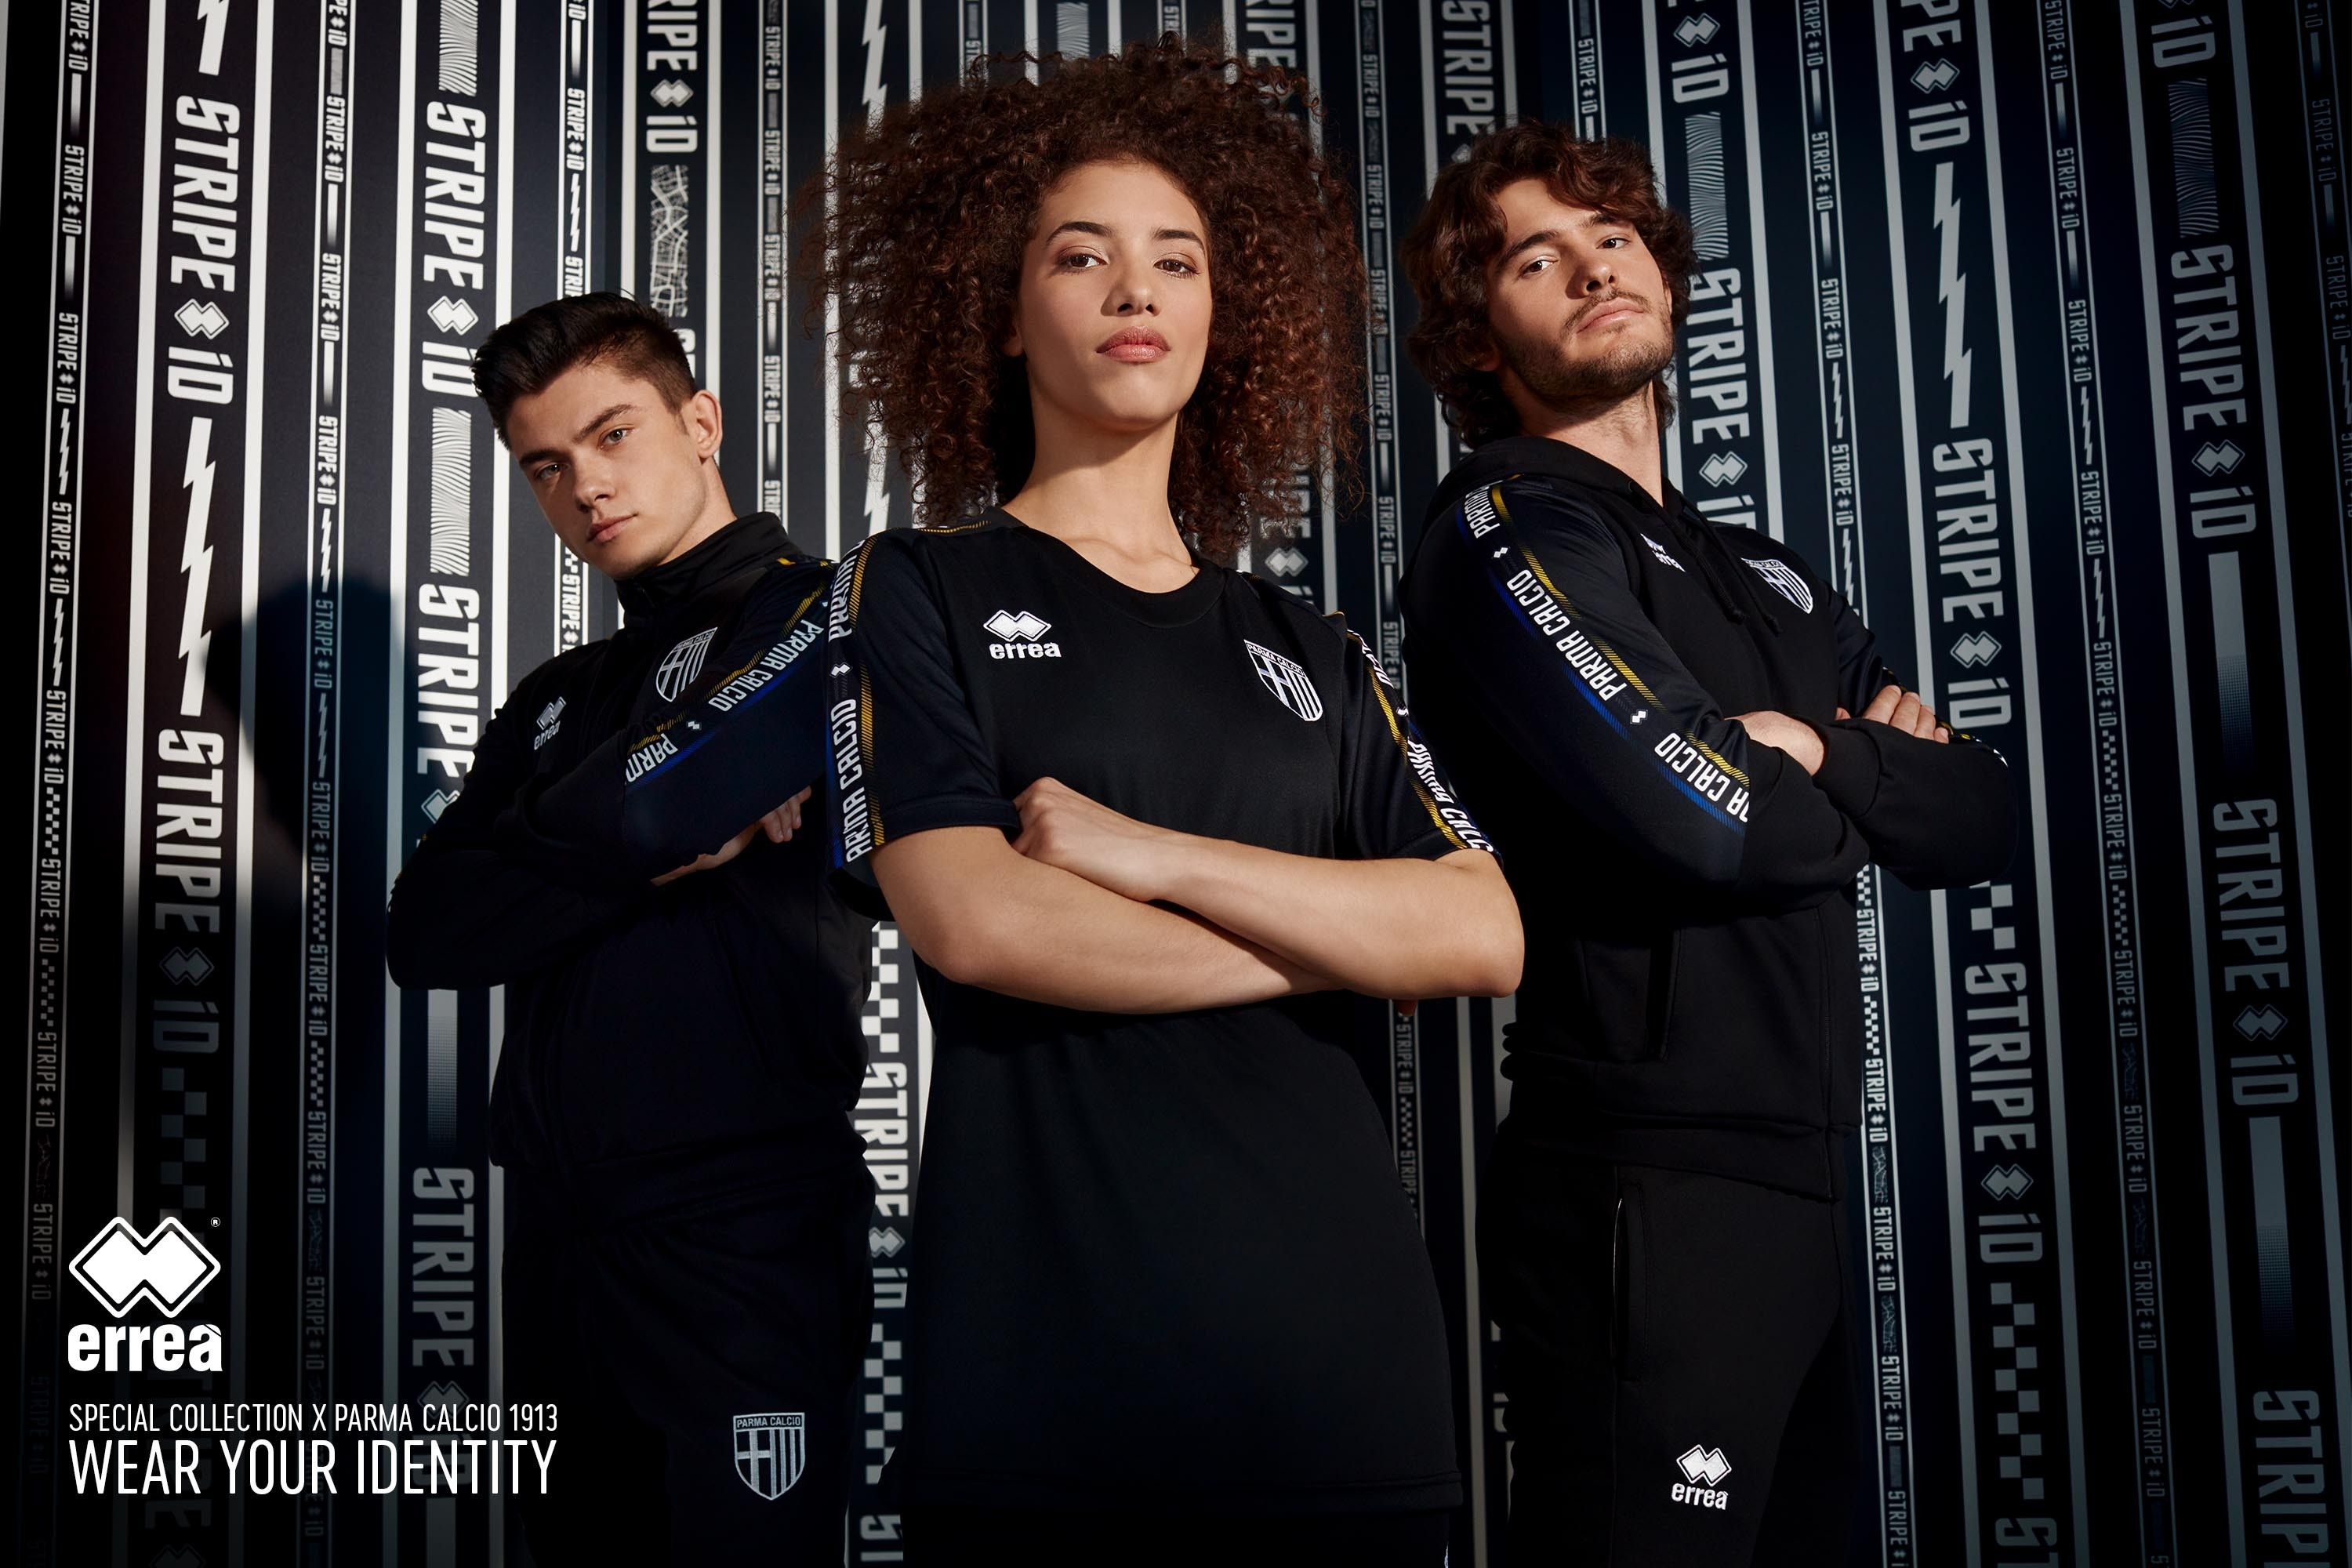 STRIPE iD 2019, the new leisurewear collection from Erreà Sport, is worn for the first time by Parma Calcio